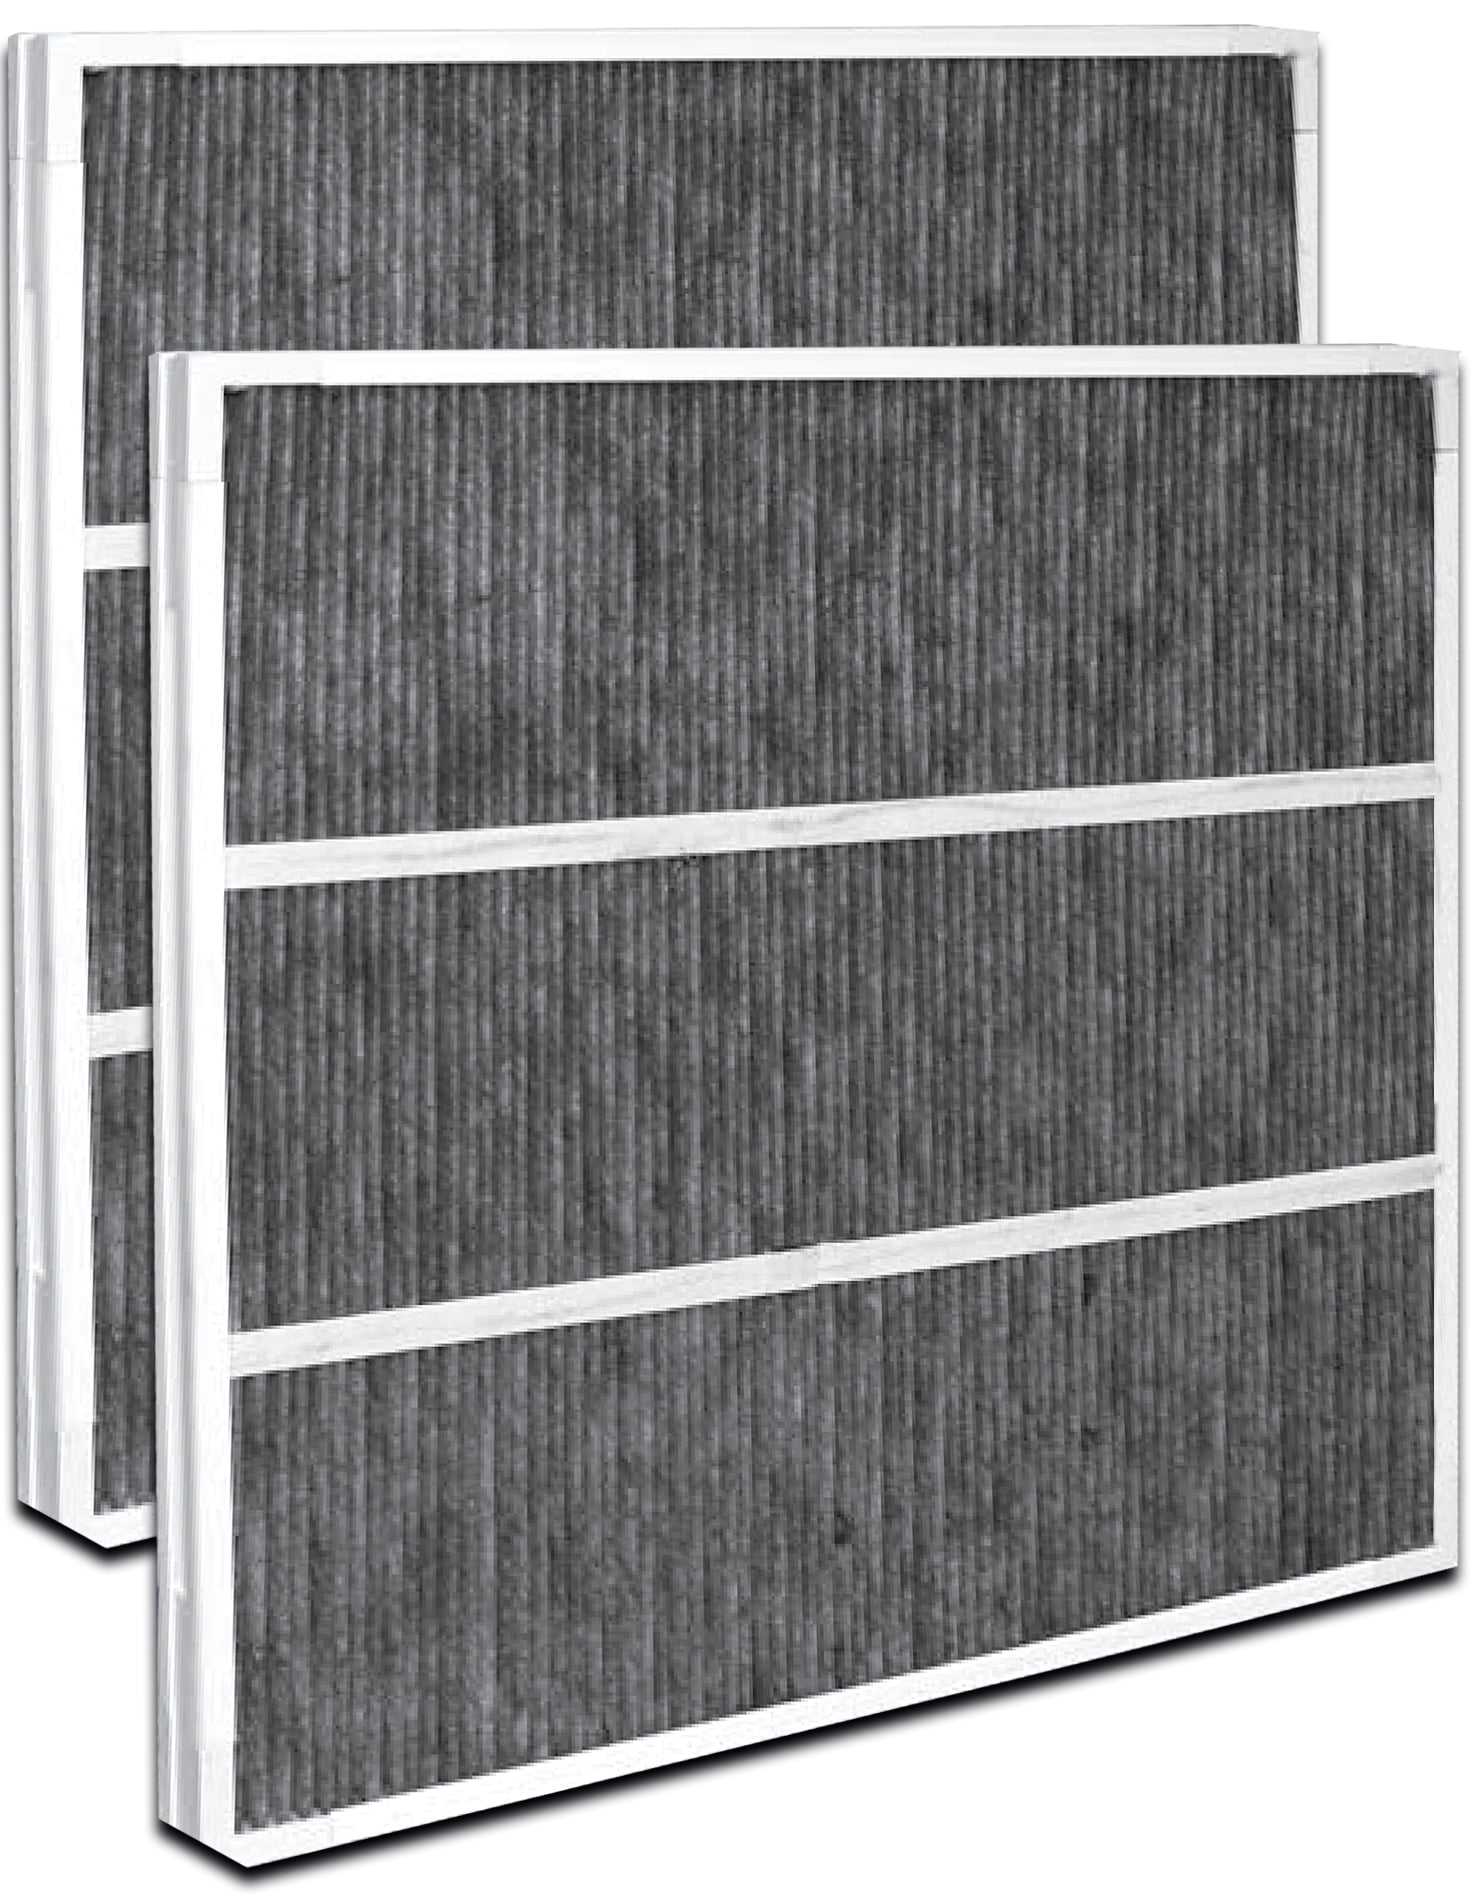 Viledon Activated Carbon Mini-Pleat Air Filter | Industrial Air Filtration Products